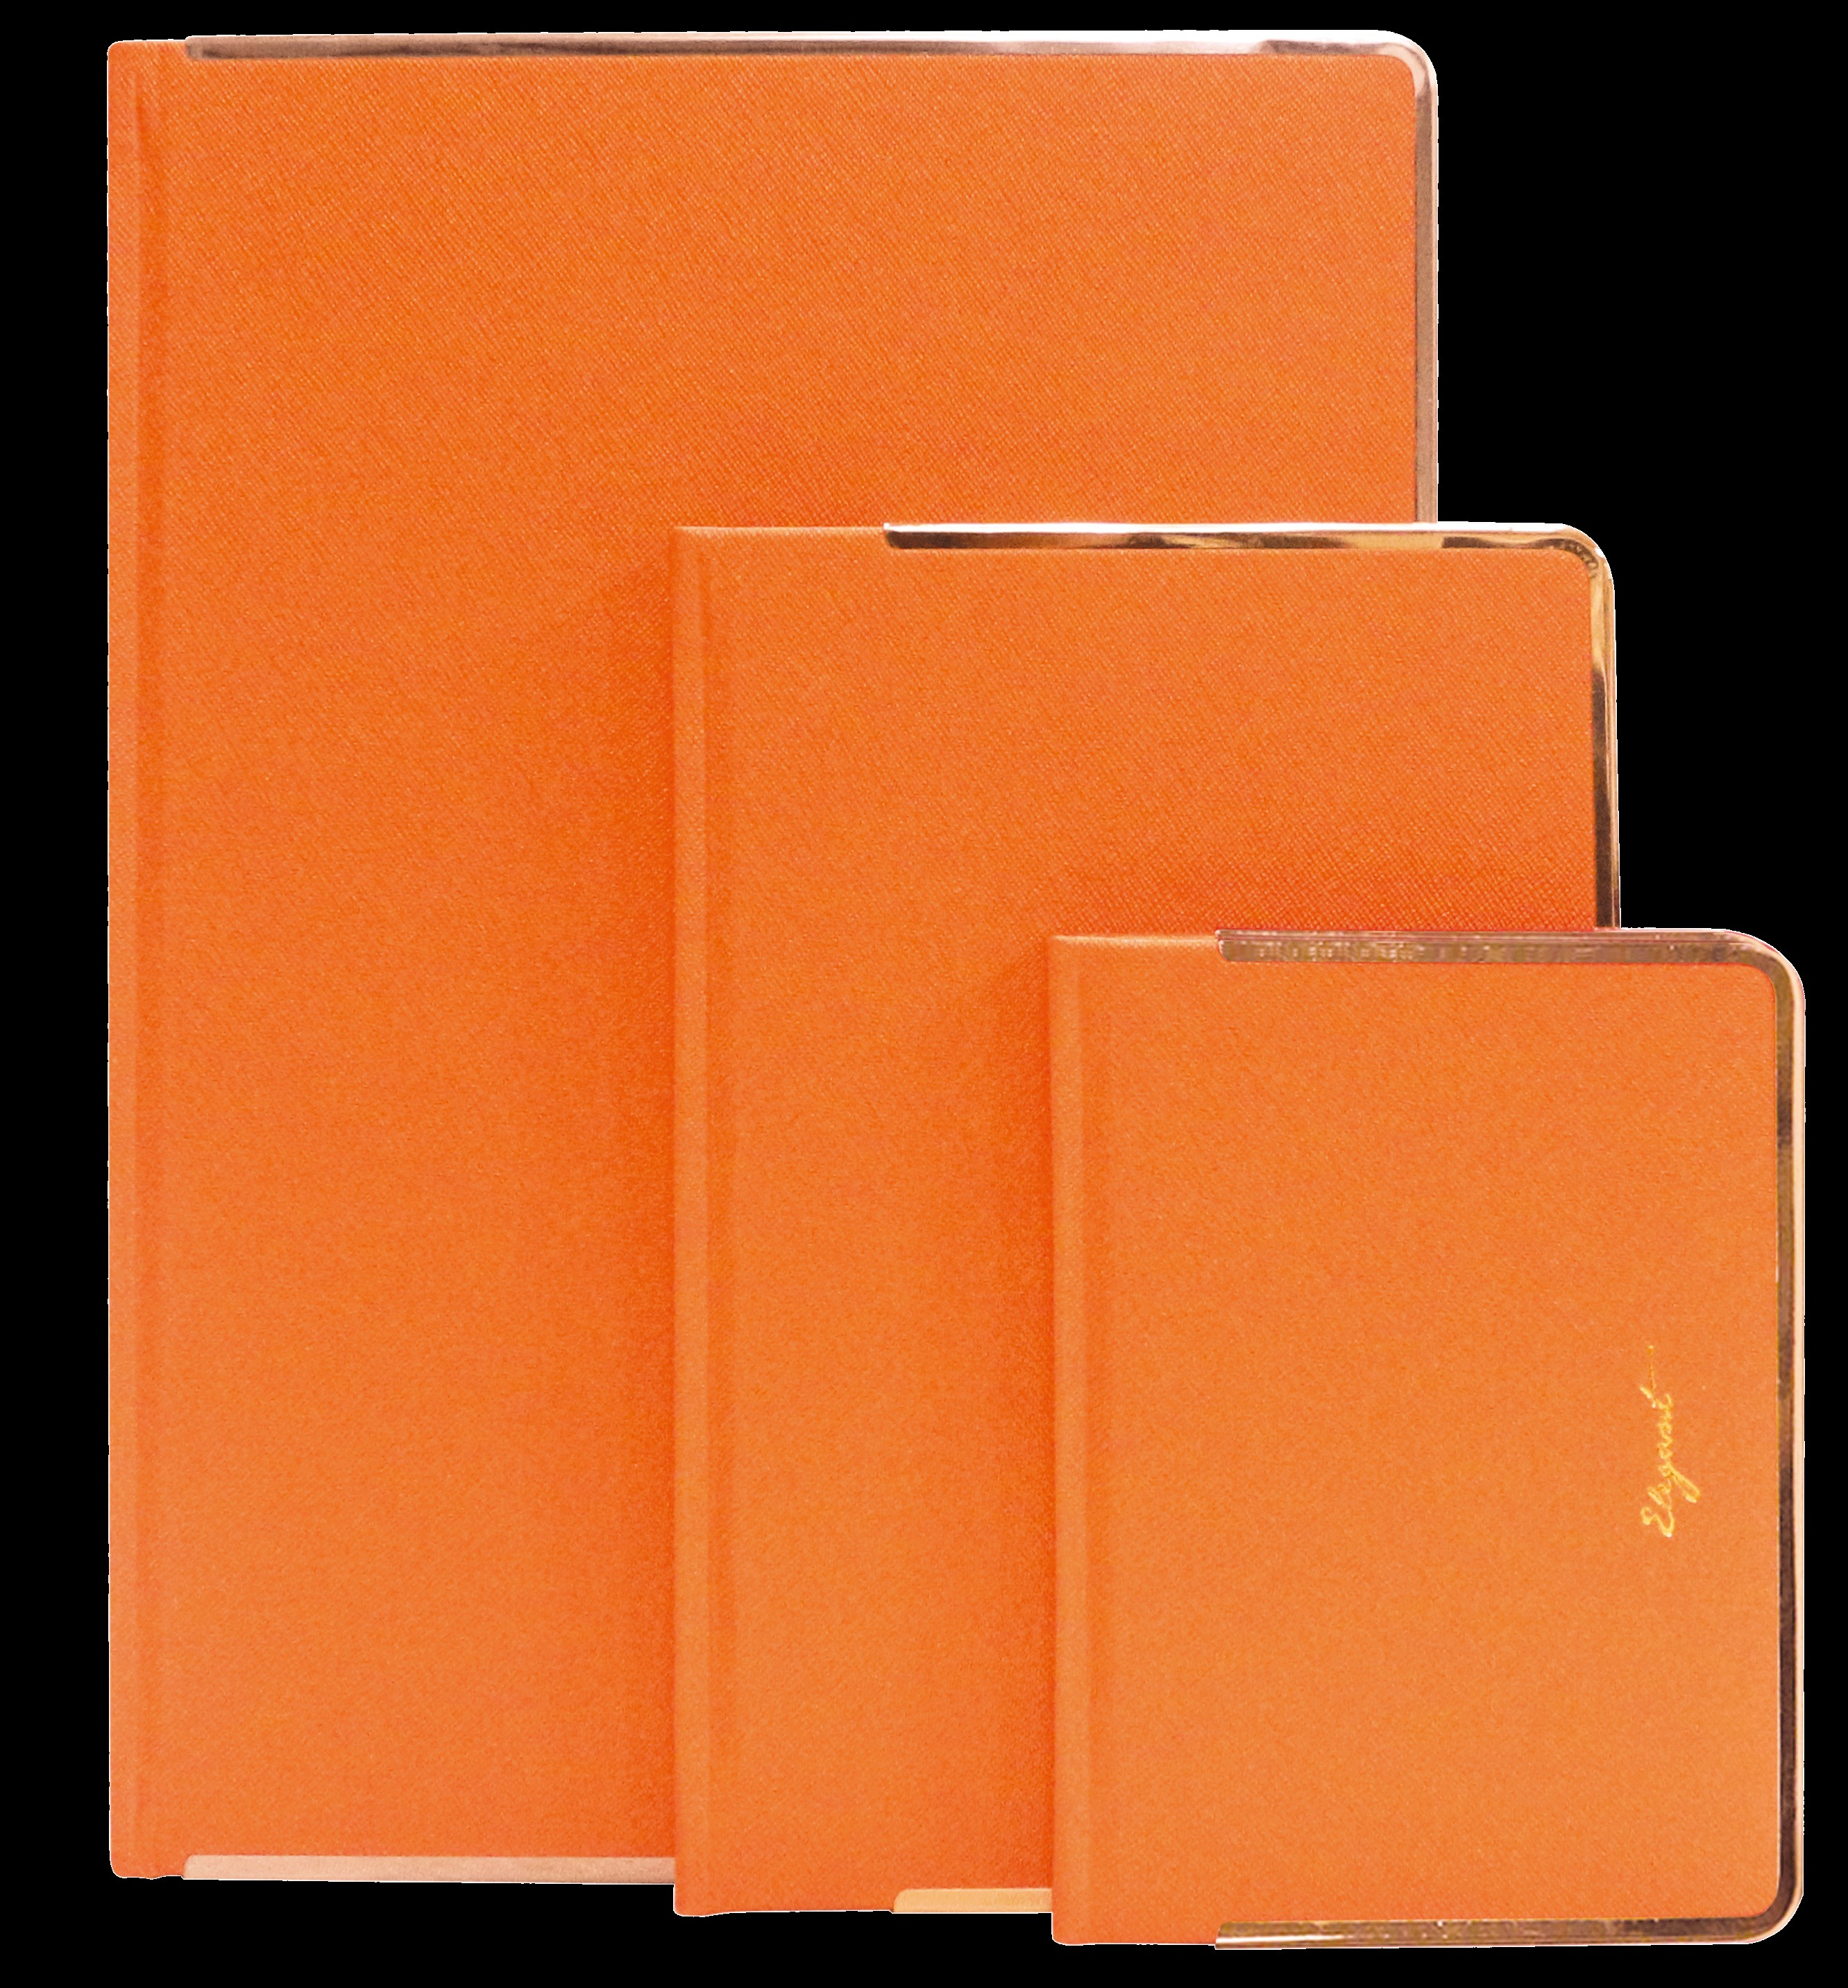 PU Leather Hardcover Journal with Contrast Color Metal Book Edge - 2016 Latest mature color PU with color corner series